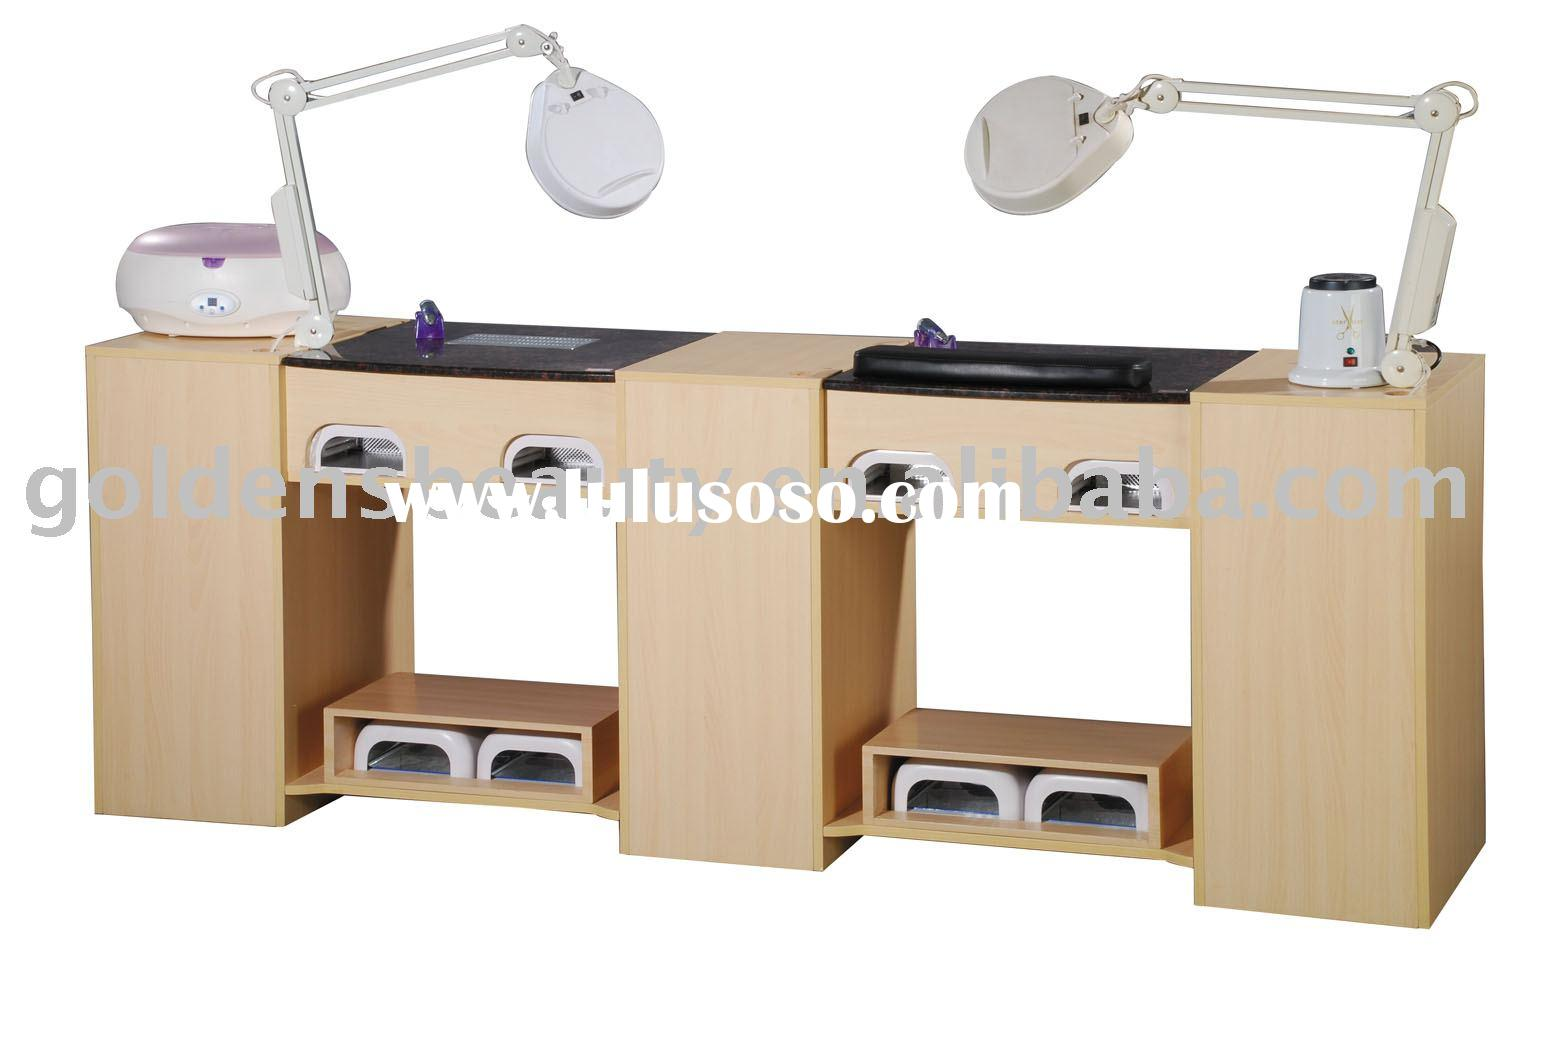 Portable nail manicure table of salon furniture for sale for Beauty salon furniture manicure table